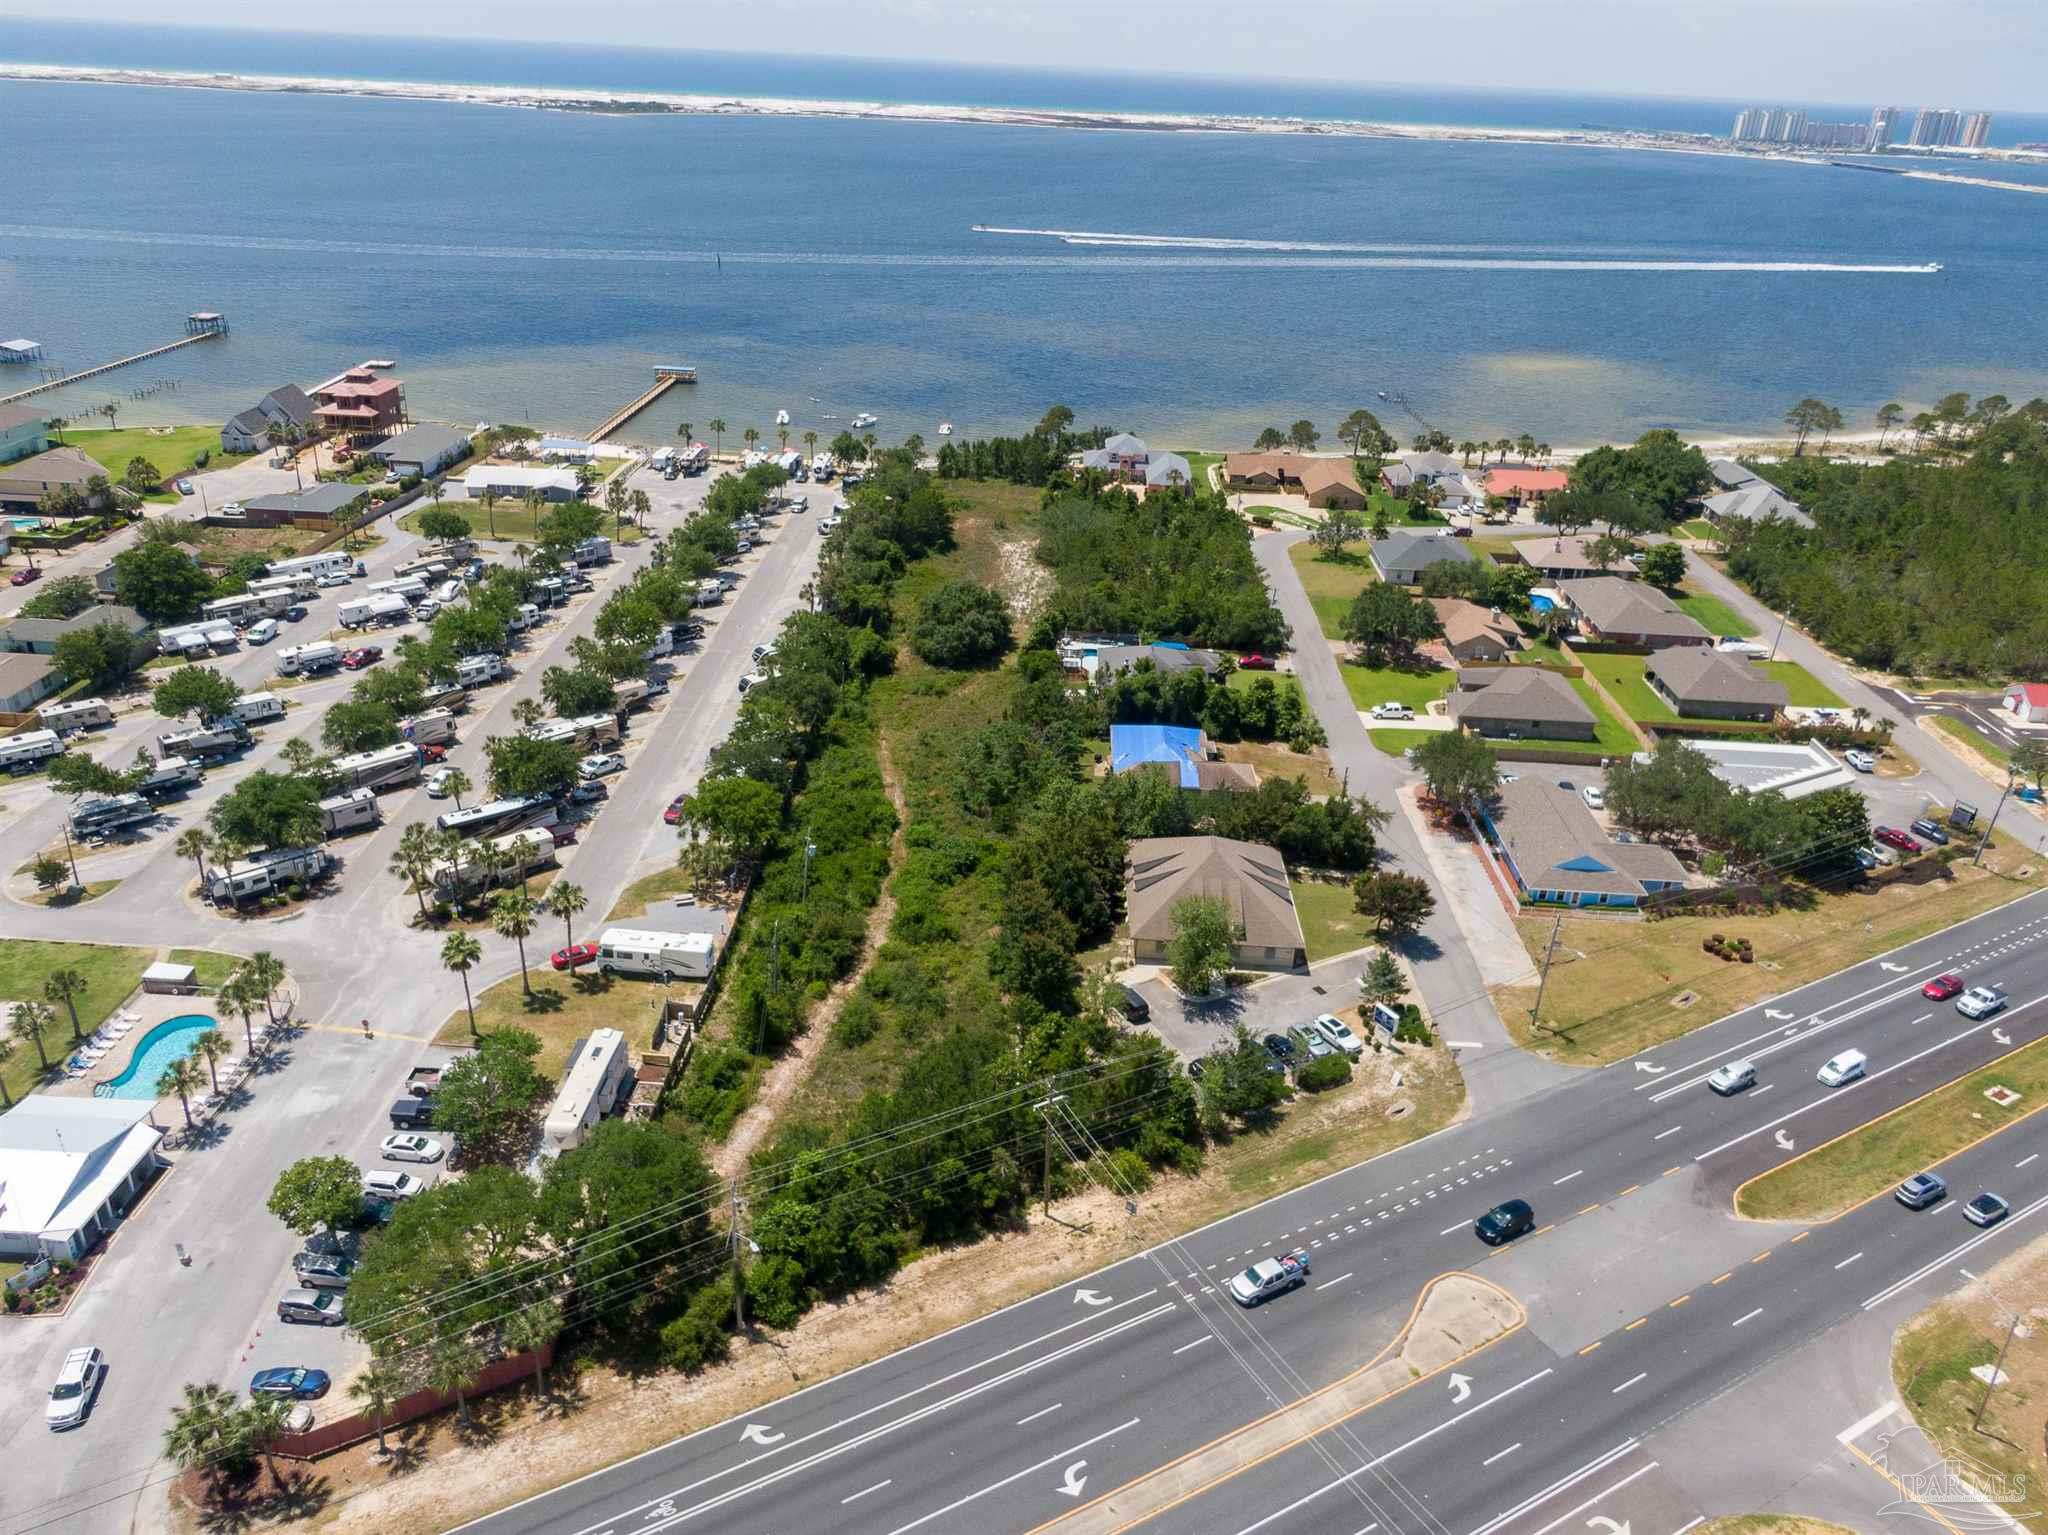 1.83 acres of Waterfront property in the rapidly growing community of Navarre. Located less than a mile East of the Navarre Beach Bridge, this property is perfect to build your dream home or to be developed for investment purposes. With 100' of frontage on the Santa Rosa sound, with its own beach, and direct access and frontage on Hwy 98, this property is a rare find! Property is across from the Hurlburt Specials Ops on the Gulf so there will not be any building there which means, you keep your view!